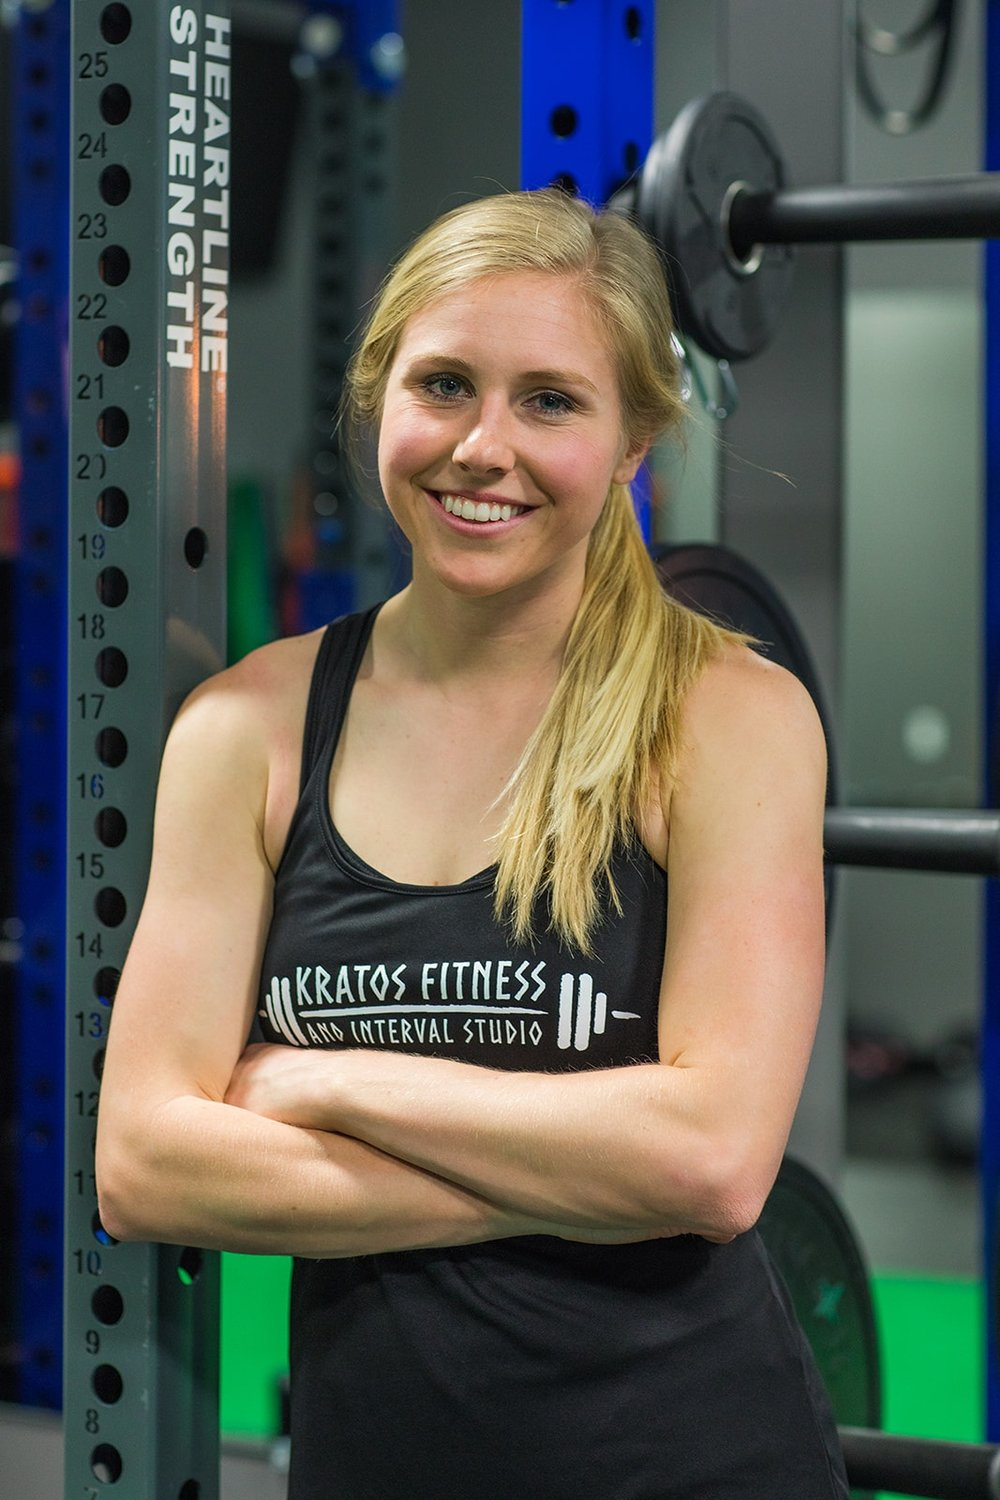 Avery Howard, Trainer - ACSM Certified Exercise Physiologist (EP-C), B.S in Exercise Science (Fitness Specialist), B.S. in Exercise Science